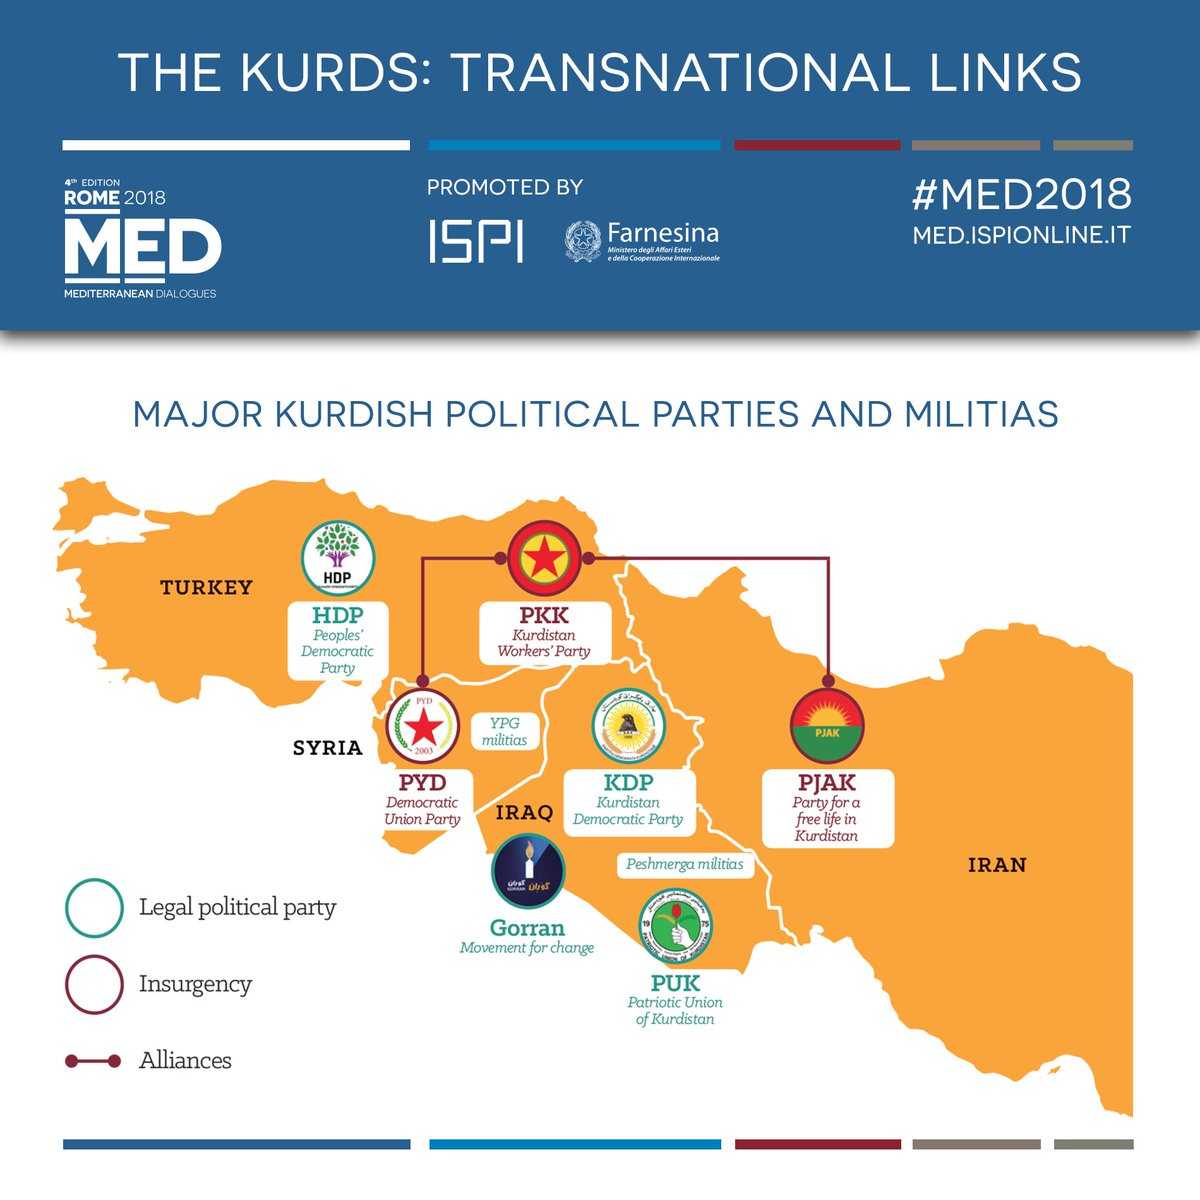 30-40 million of Kurds live in the Middle East and the Kurdish forces played a key role in defeating #ISIS and liberating Raqqa in the summer of 2017.   What are the major Kurdish political parties and militias? Download the #Med2018 report → https://t.co/9BnXHrZiov